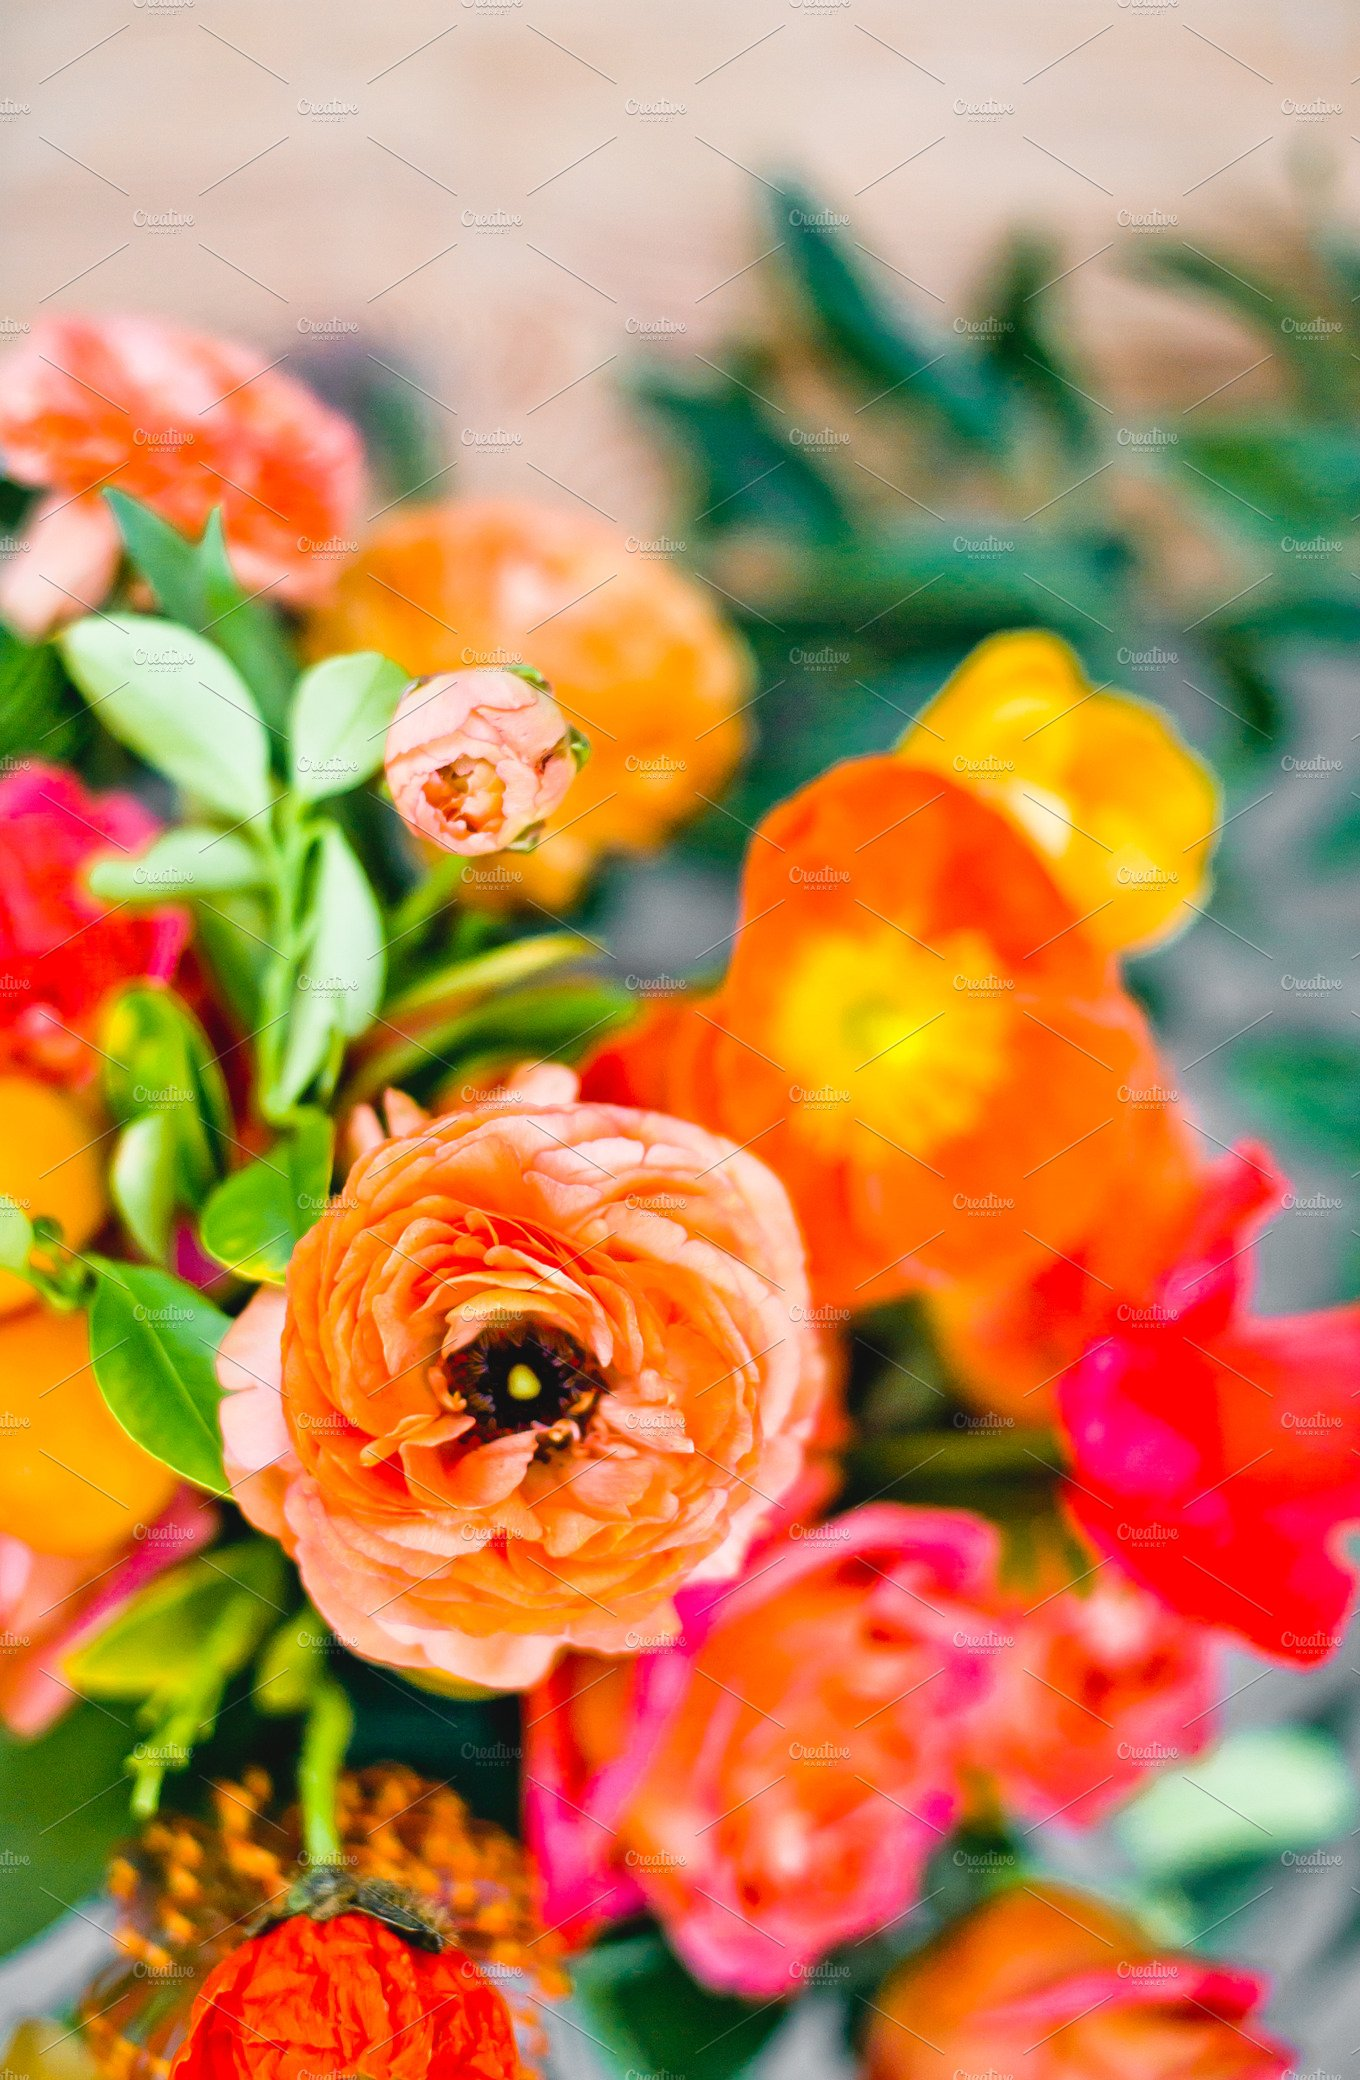 Bright Bold Flowers In Orange Pink Nature Photos Creative Market